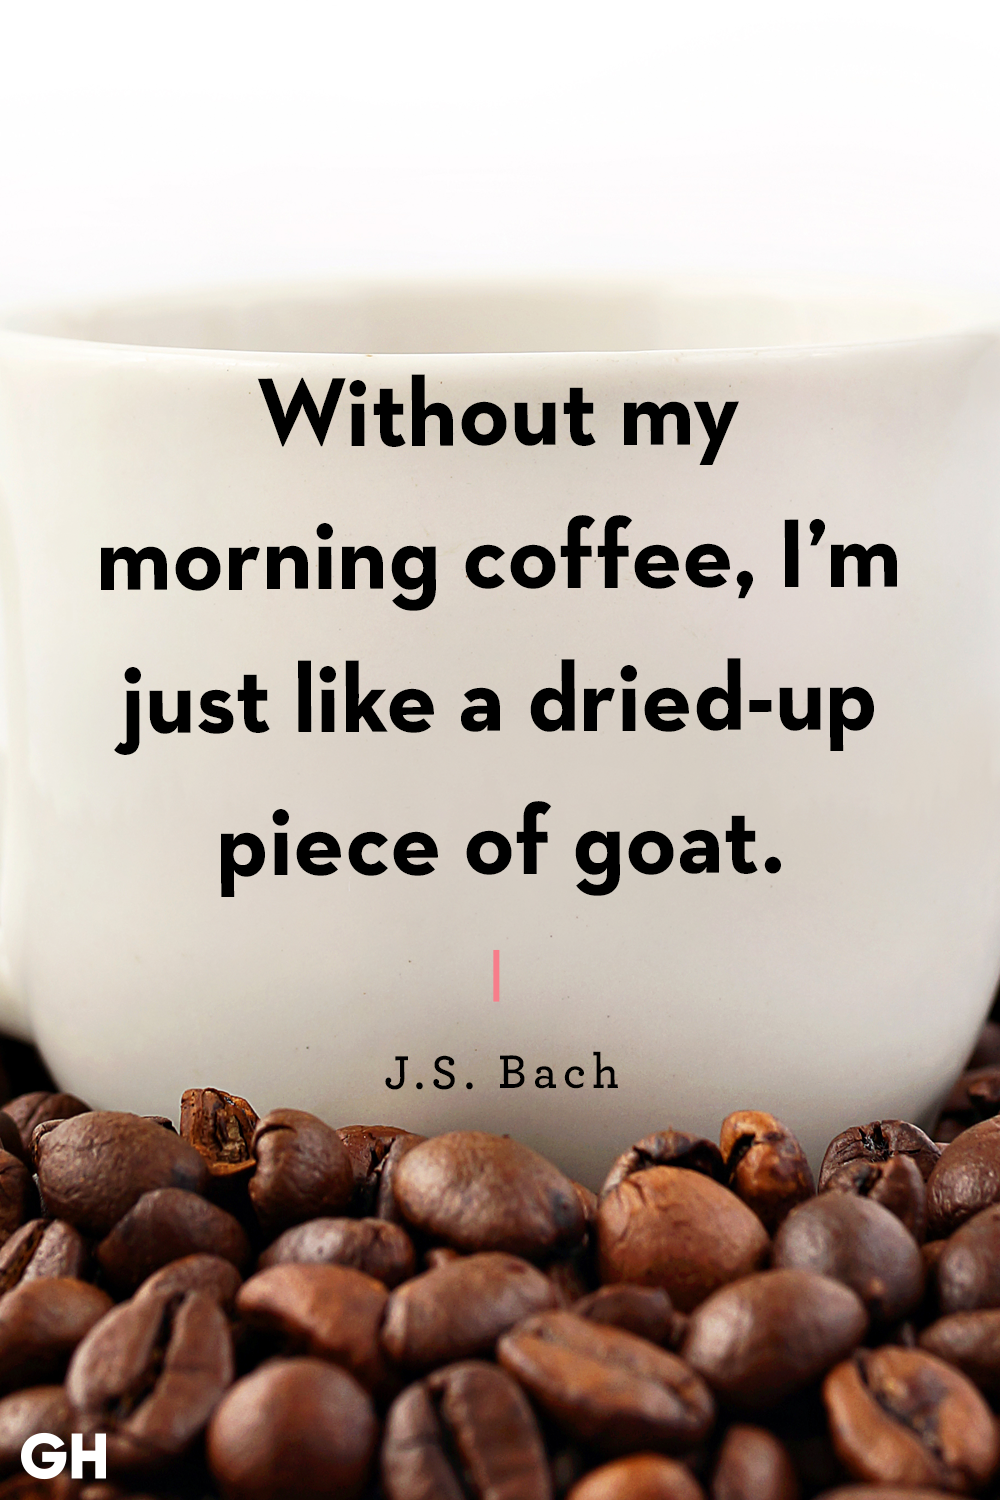 40 Funny Coffee Quotes - Best Coffee Quotes and Sayings #meWithoutCoffeeQuote